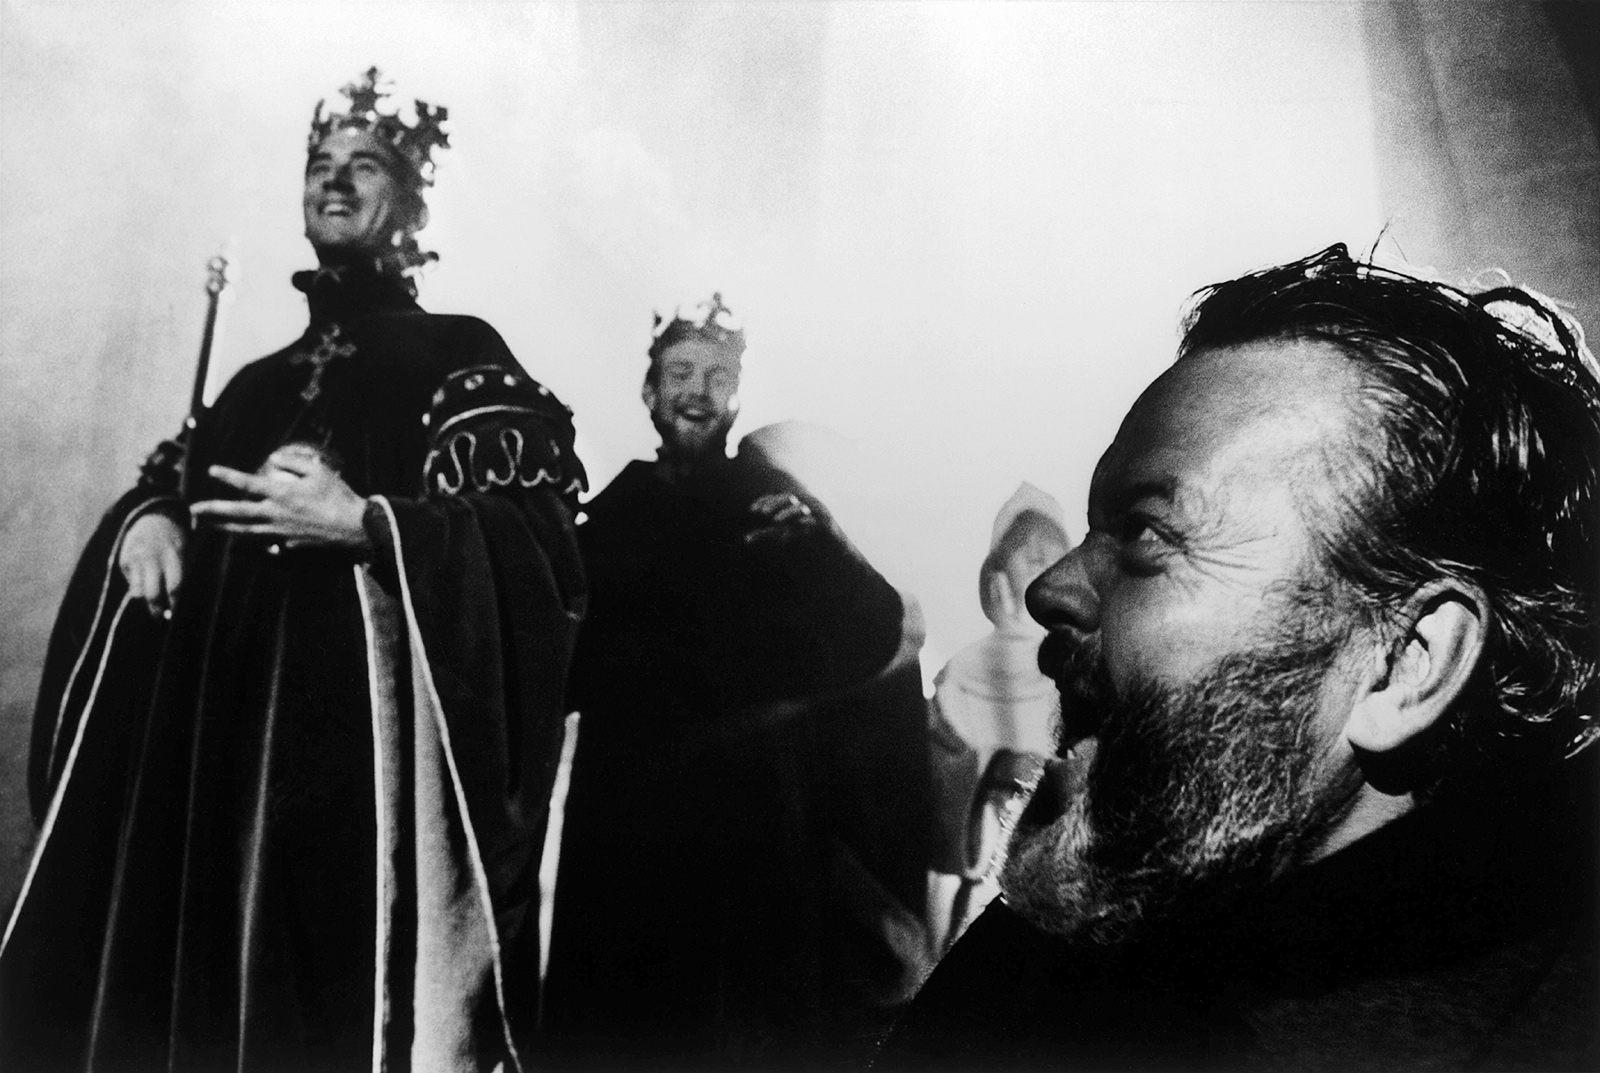 Orson Welles on the set of Chimes at Midnight, 1964